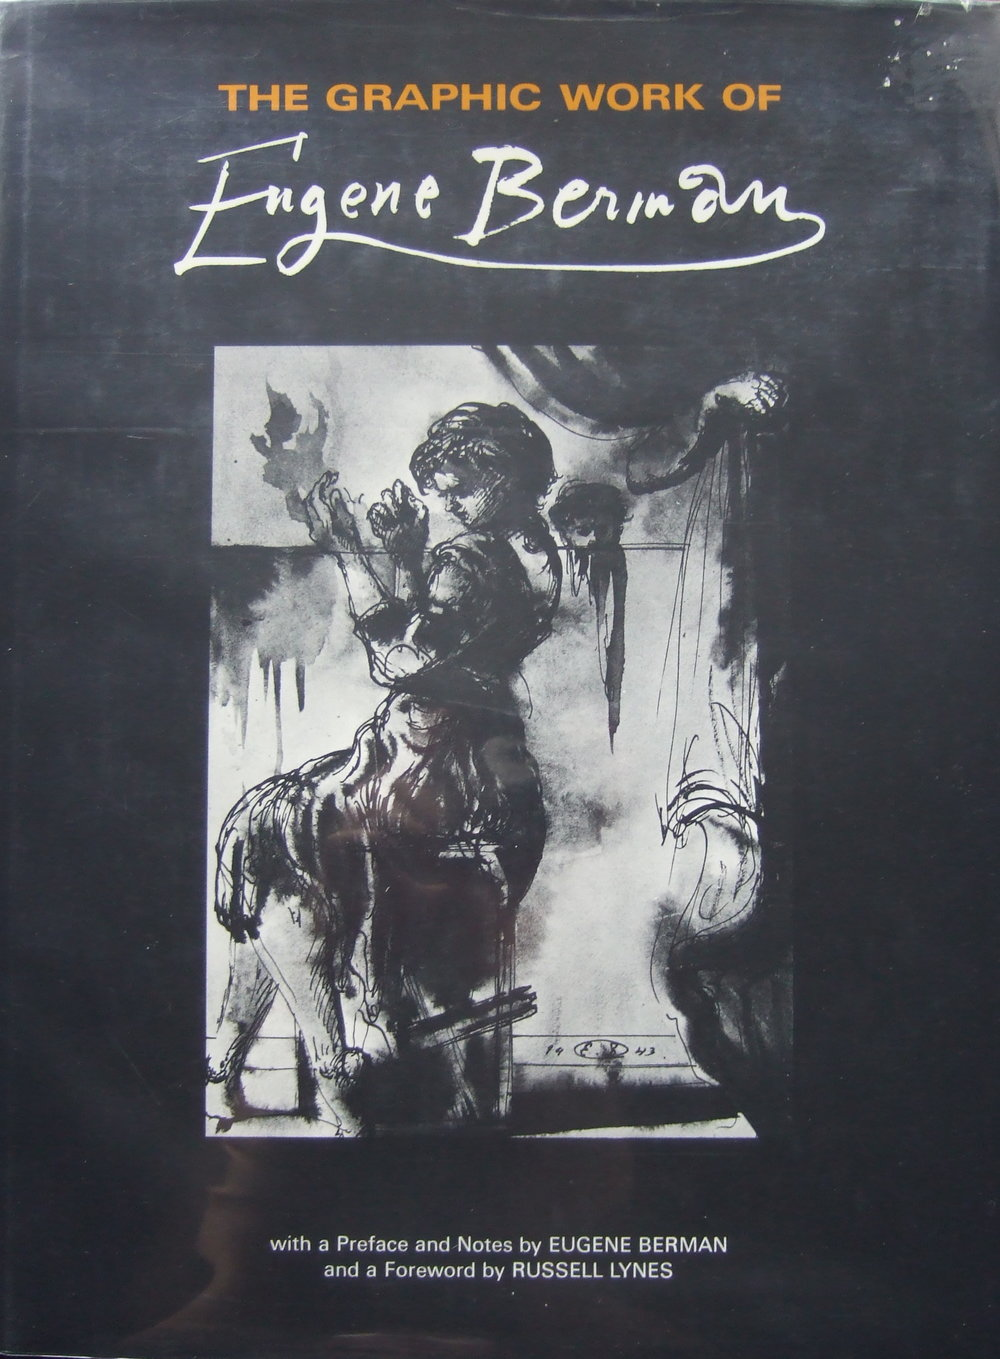 The Graphic Work of Eugene Berman